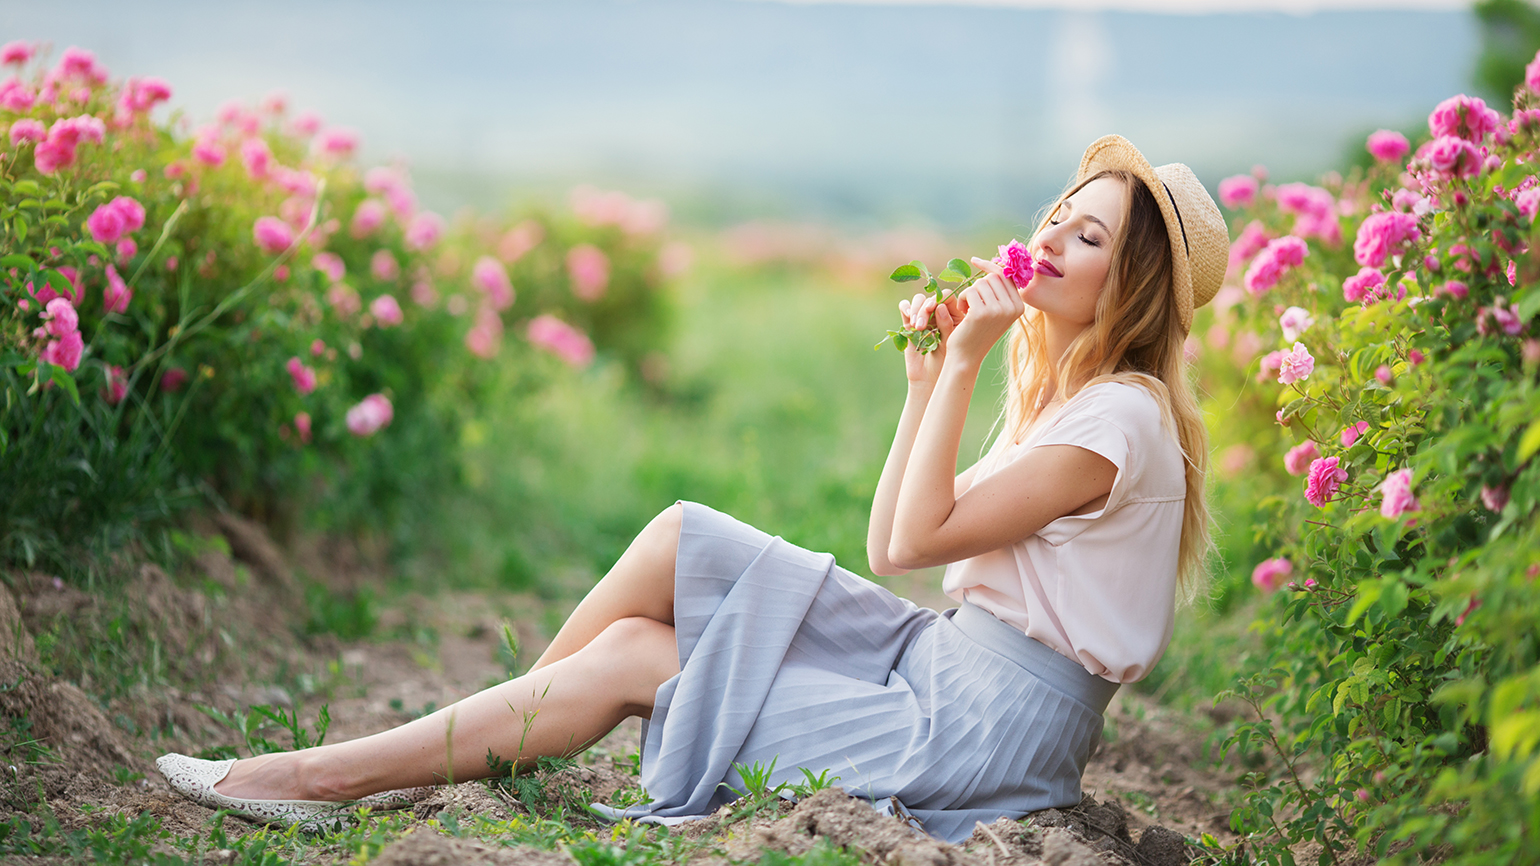 A woman stops to smell the roses on a warm summer day